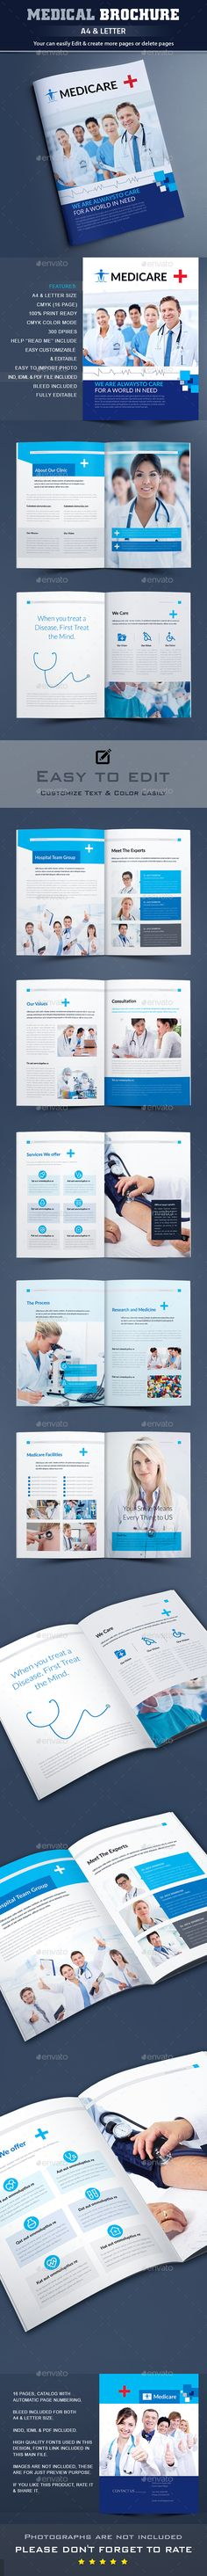 newera-bro2-525x379png (525×379) medical brochure Pinterest - medical brochures templates